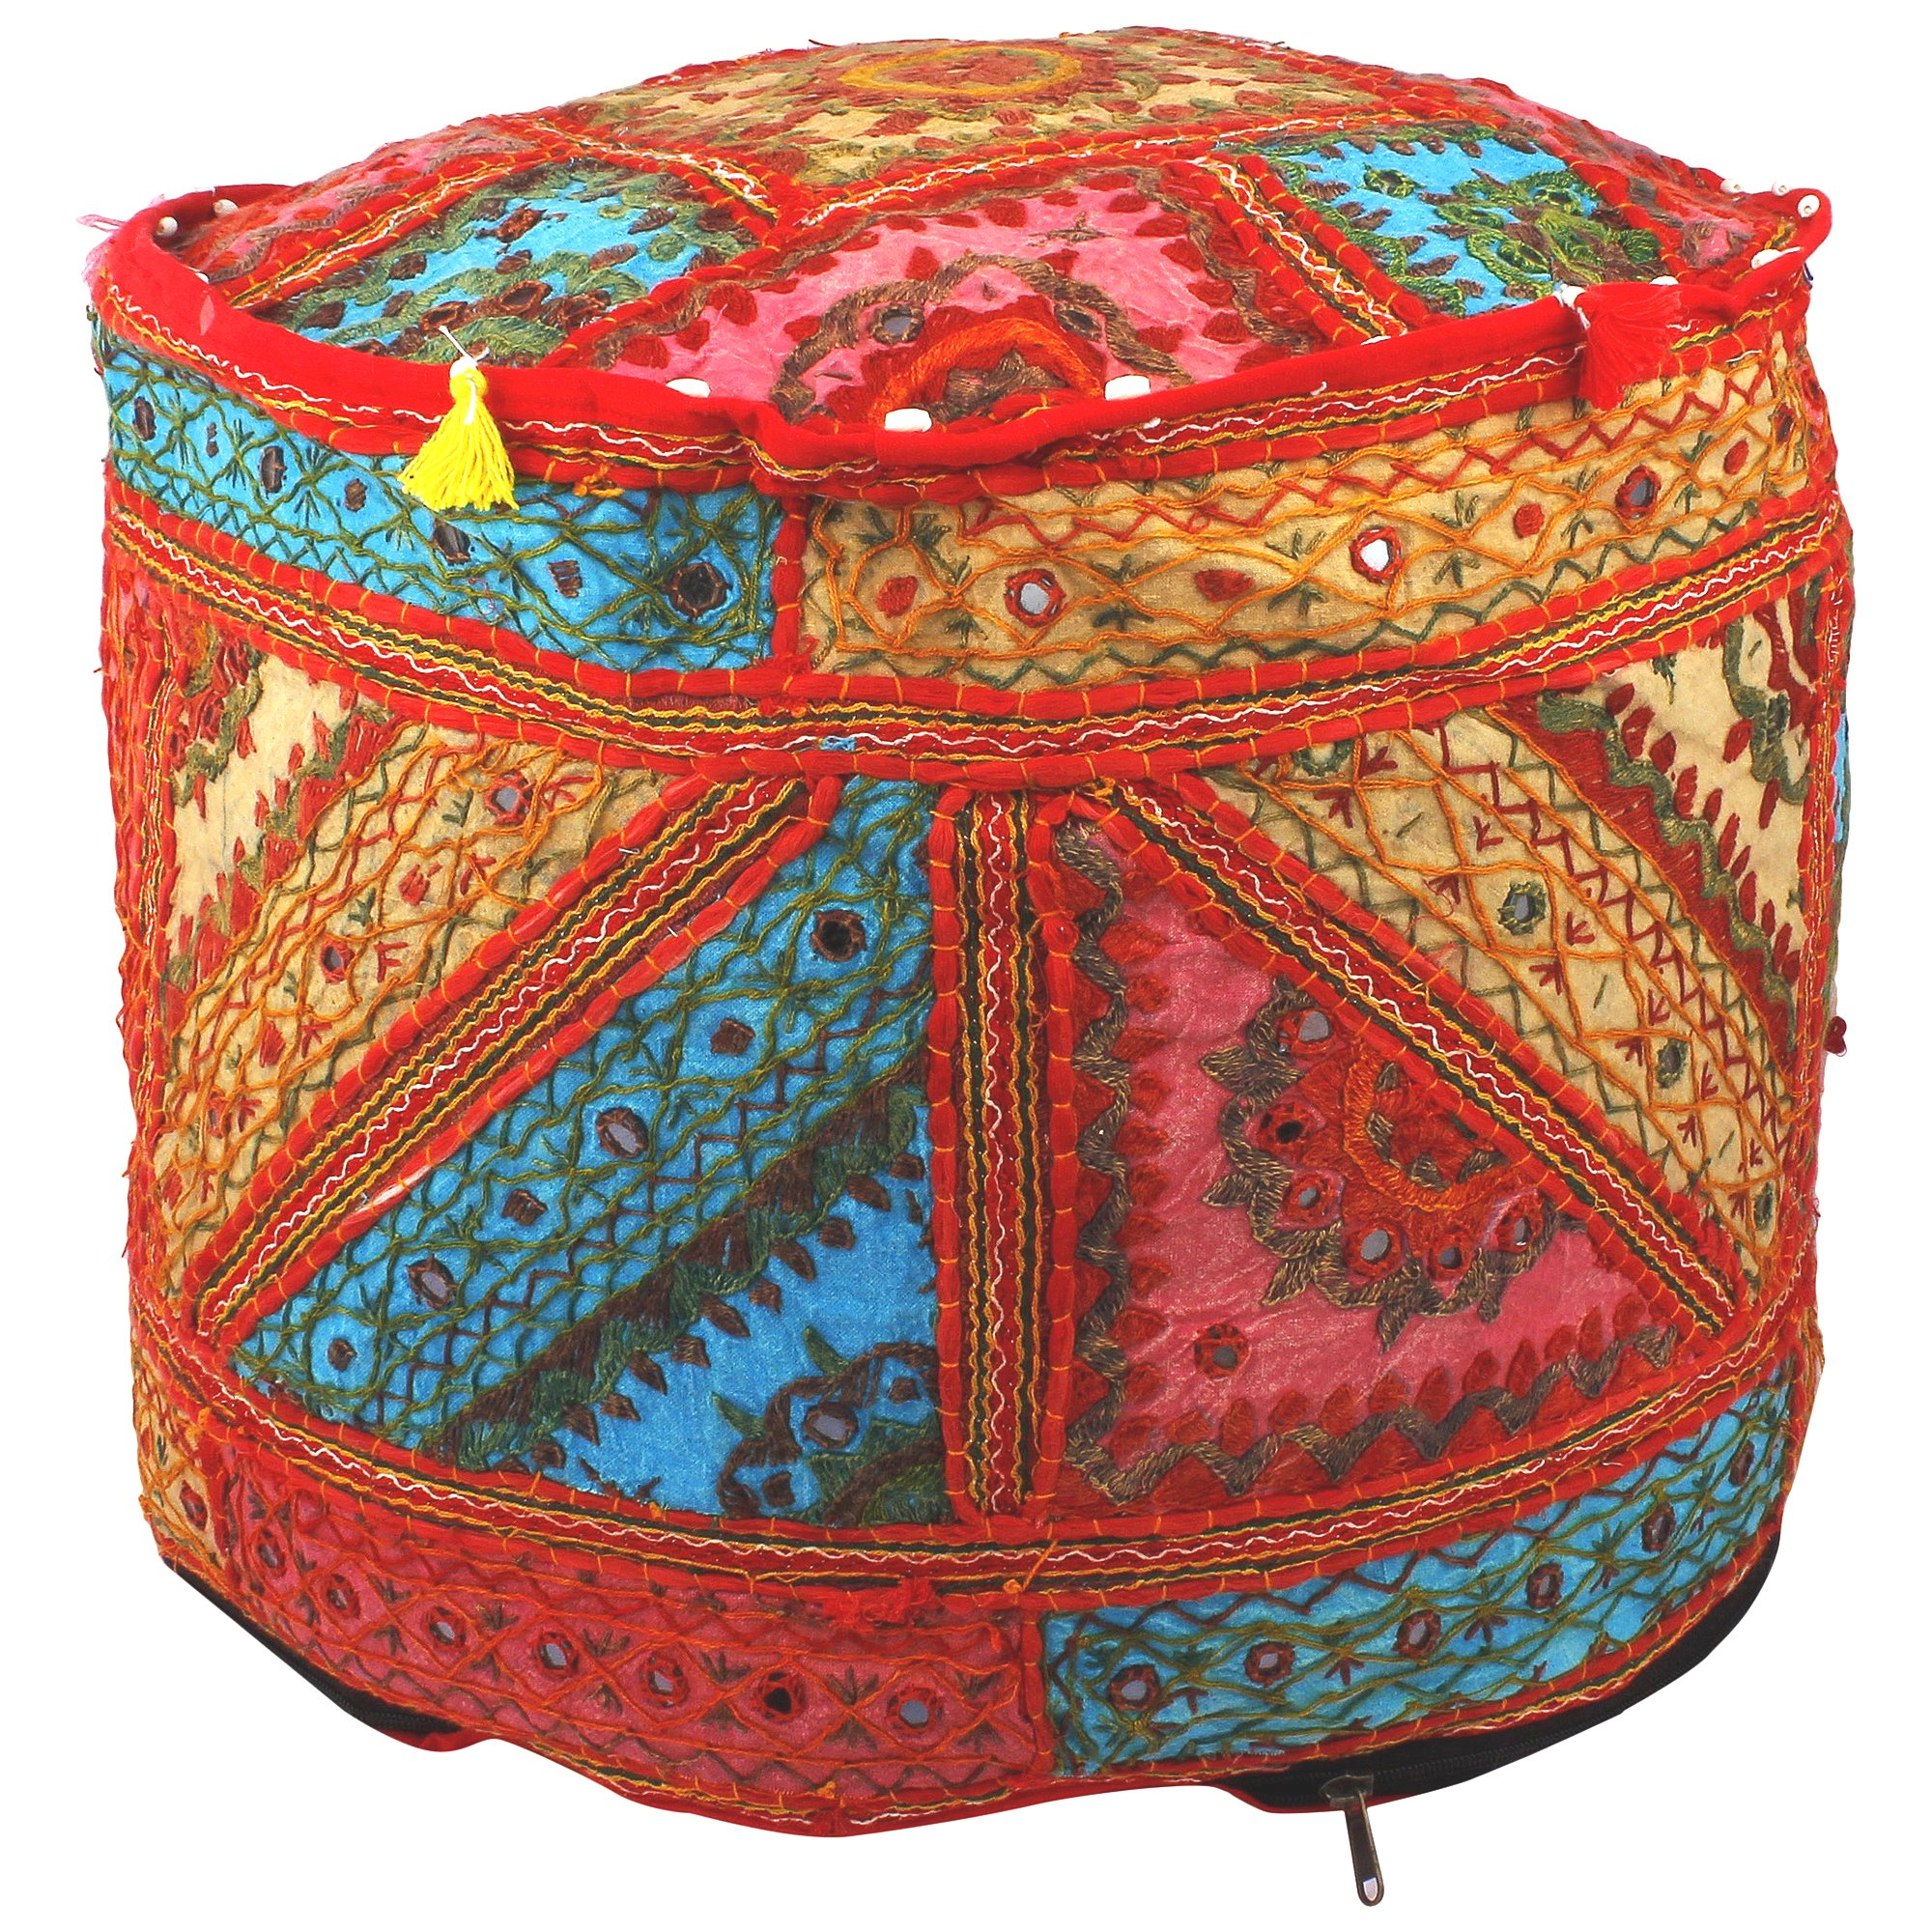 Maniona Crafts Indian Embroidered Patchwork Ottoman Cover,Traditional Indian Decorative Pouf Ottoman,Indian Vintage Patchwork Ottoman Pouf , Indian Comfortable Floor Cotton Cushion Ottoman Pouf,14x18''